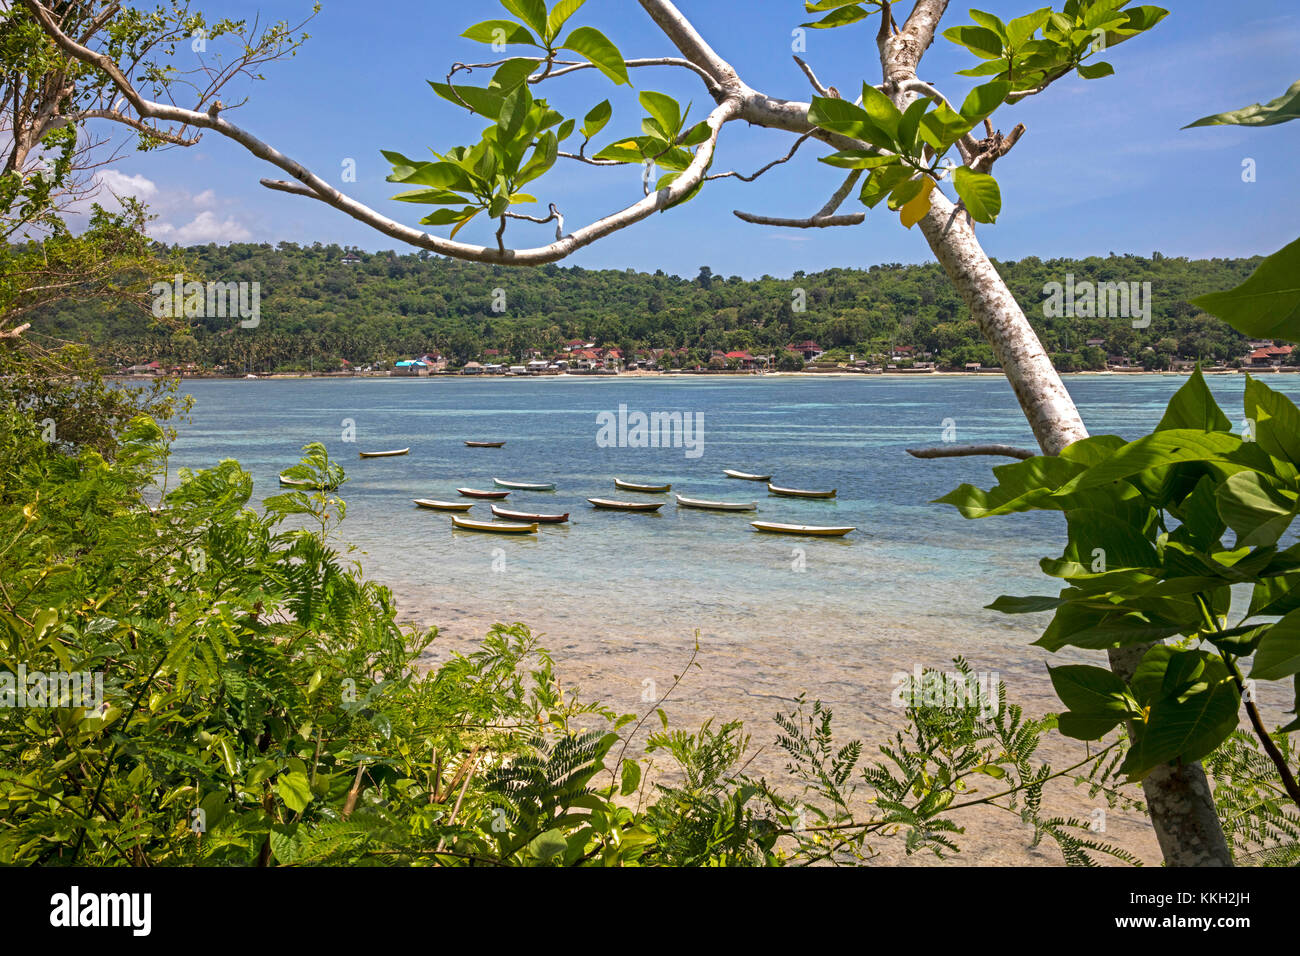 Fishing boats and view over coastal village at the island Nusa Ceningan seen from Nusa Lembongan near Bali in Indonesia - Stock Image